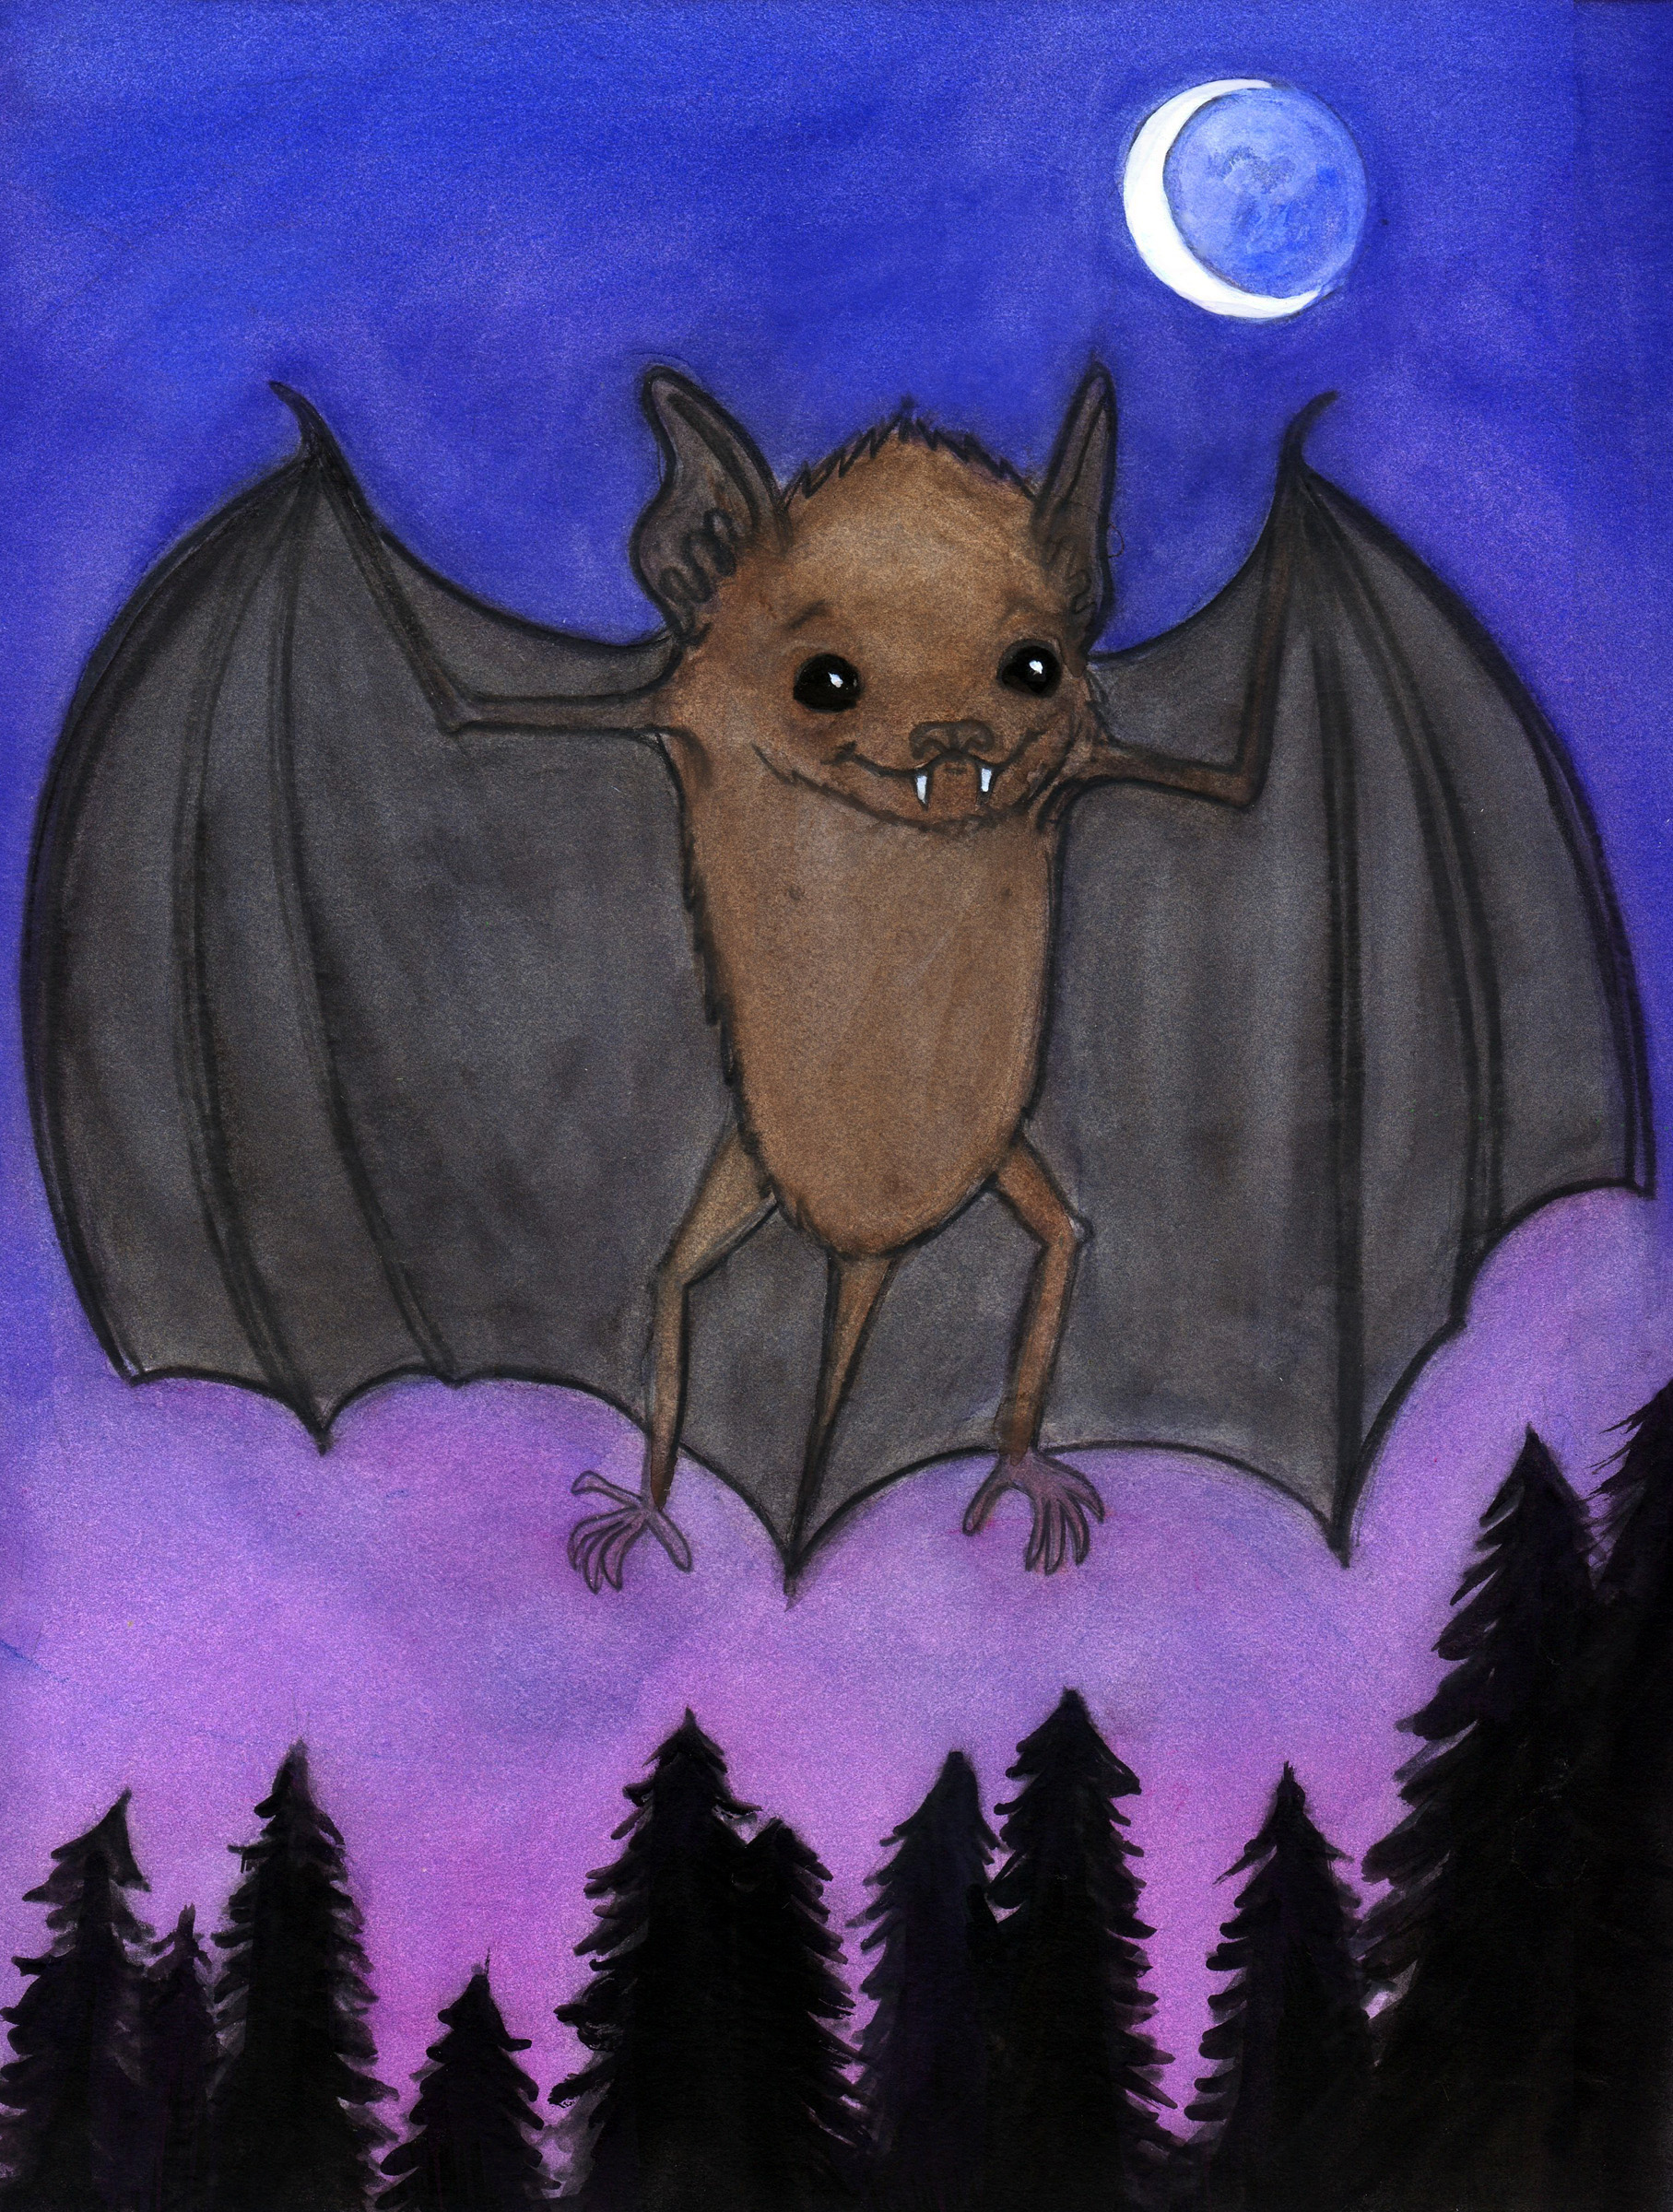 Herman the Little Brown Bat